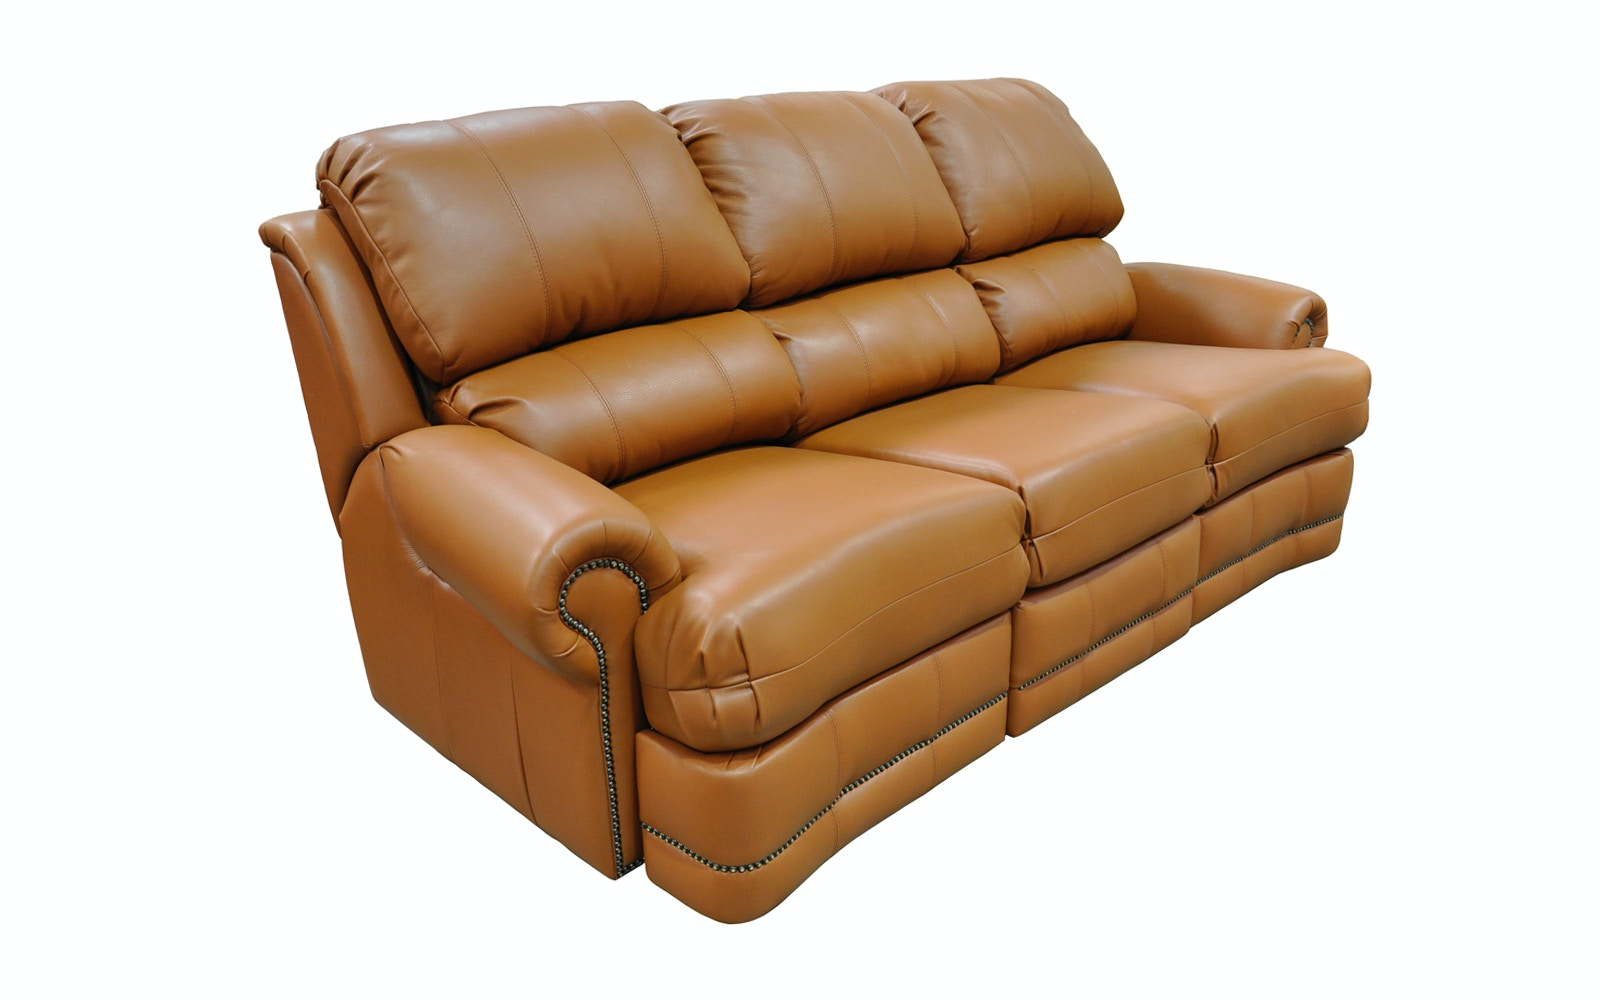 Omnia Leather By Leather And More Omnia Leather Reclining Sofa Morgan